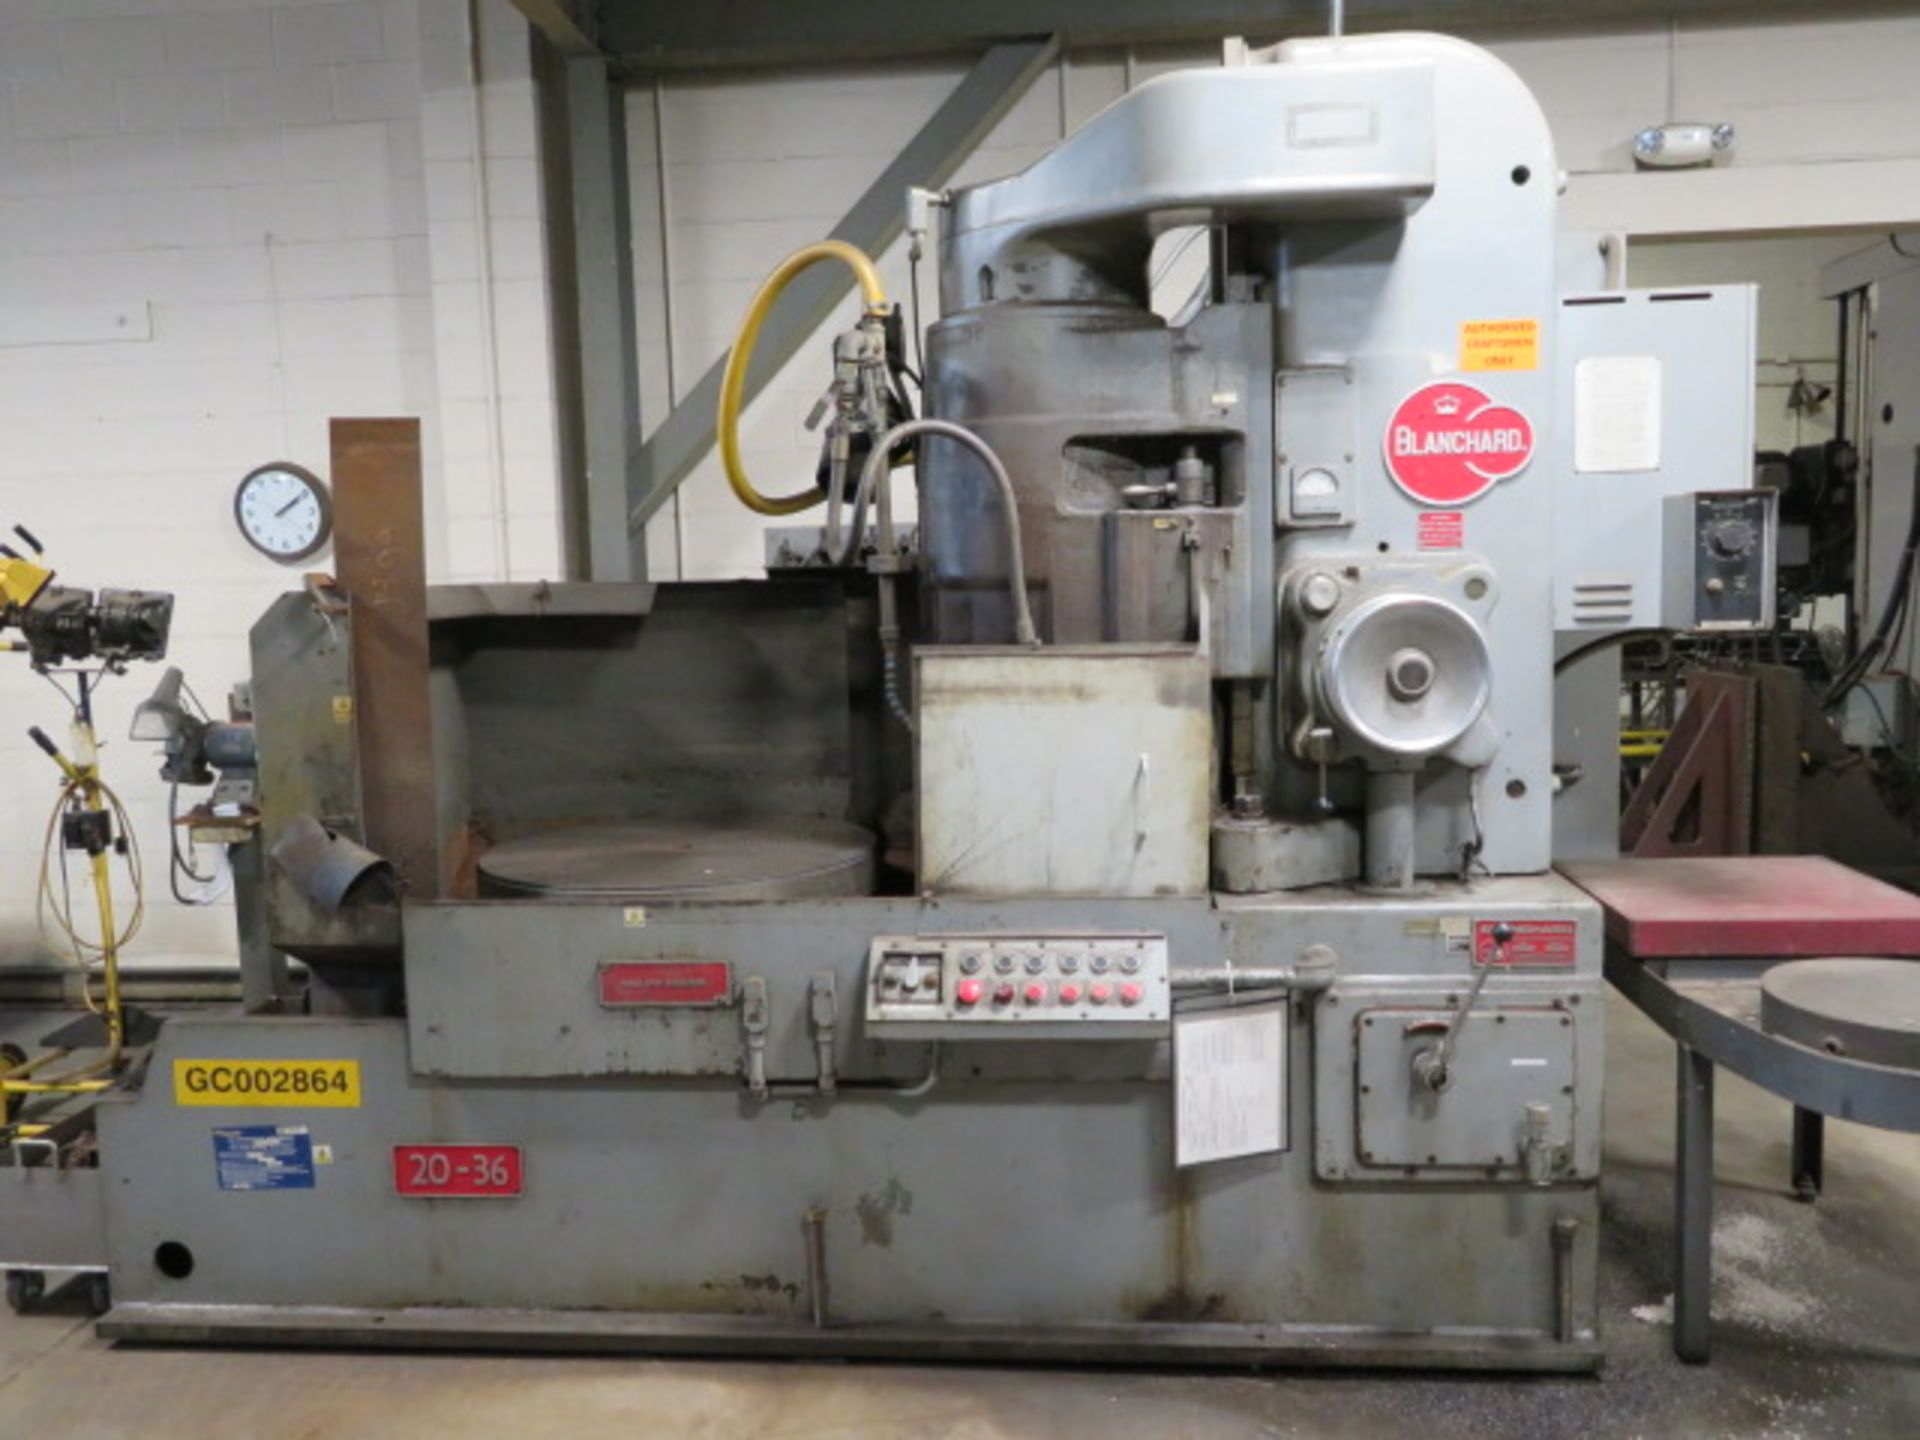 Lot 0F - BLANCHARD 20-36 Rotary Surface Grinder, S/N 20-15-239